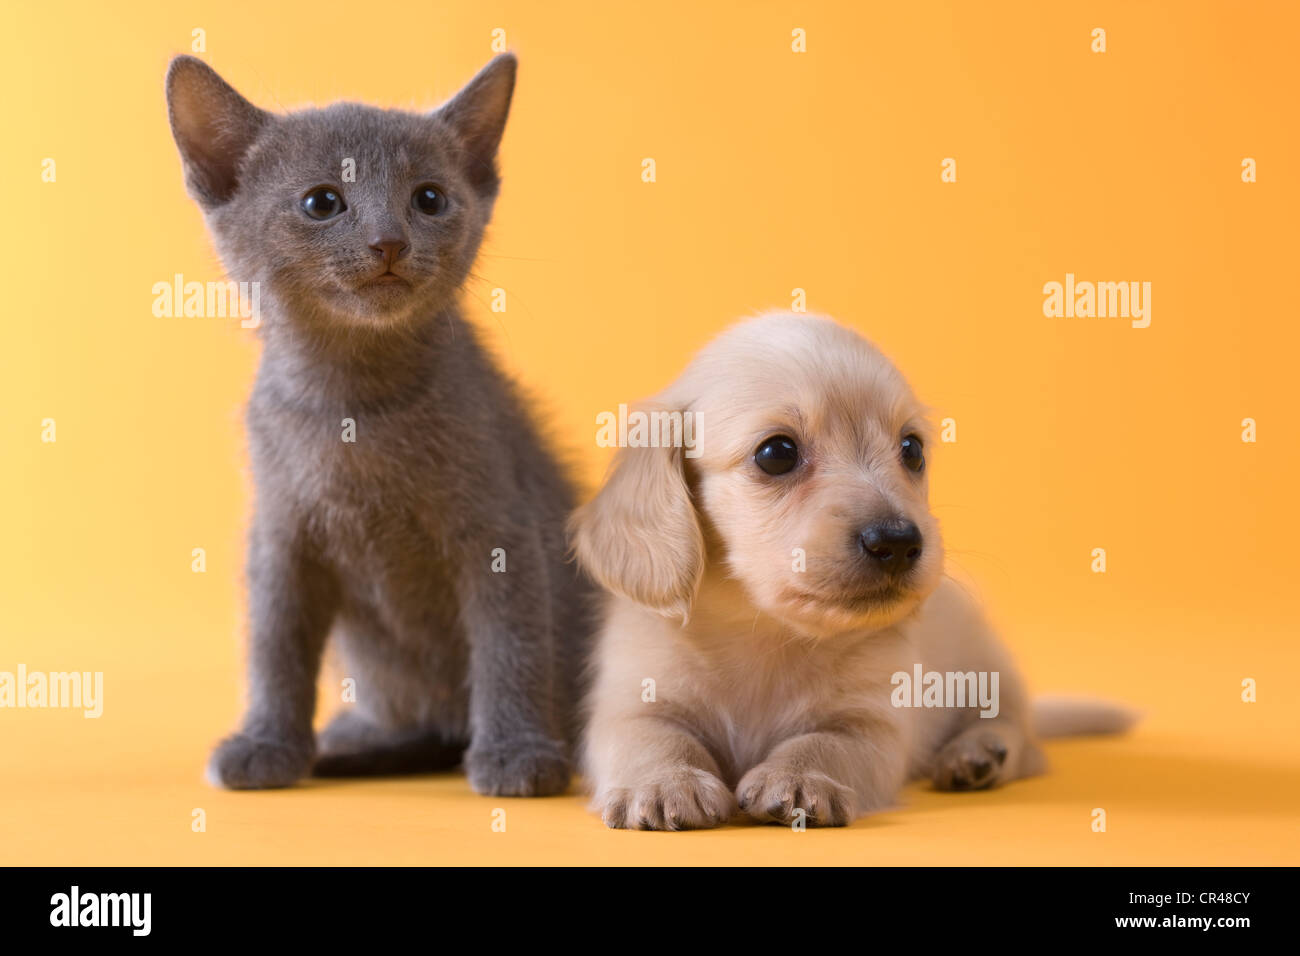 Russian Blue Kitten and Dachshund Puppy Stock Royalty Free